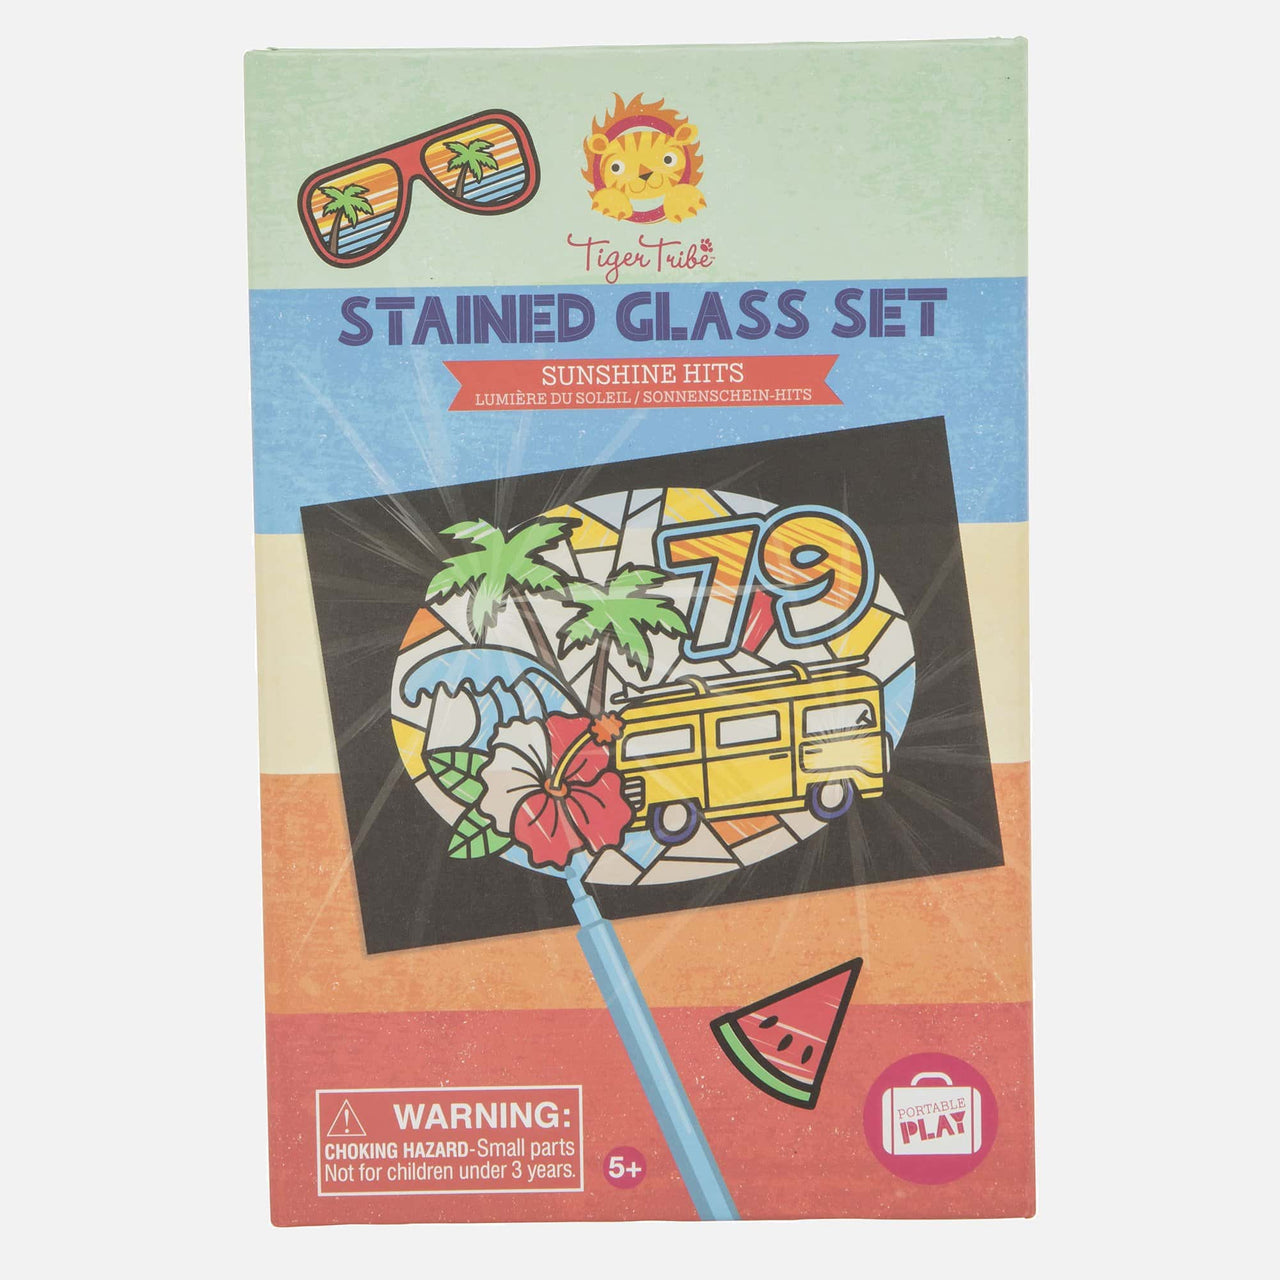 Stained Glass Set - Sunshine Hits